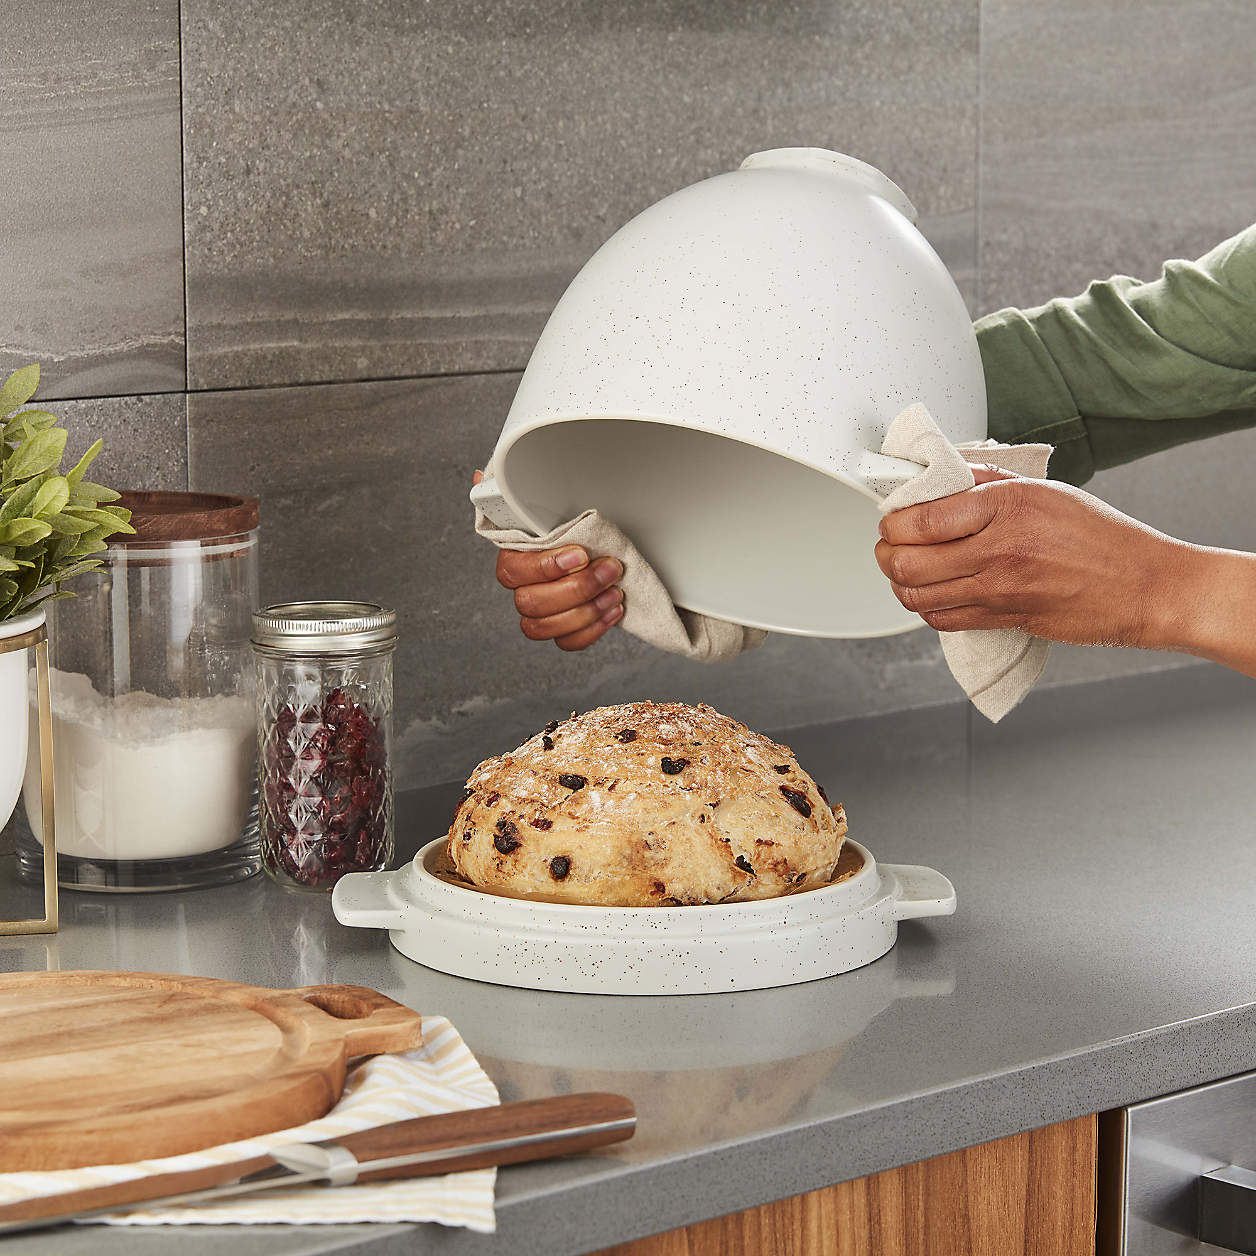 kitchenaid bread bowl with baking lid on counter